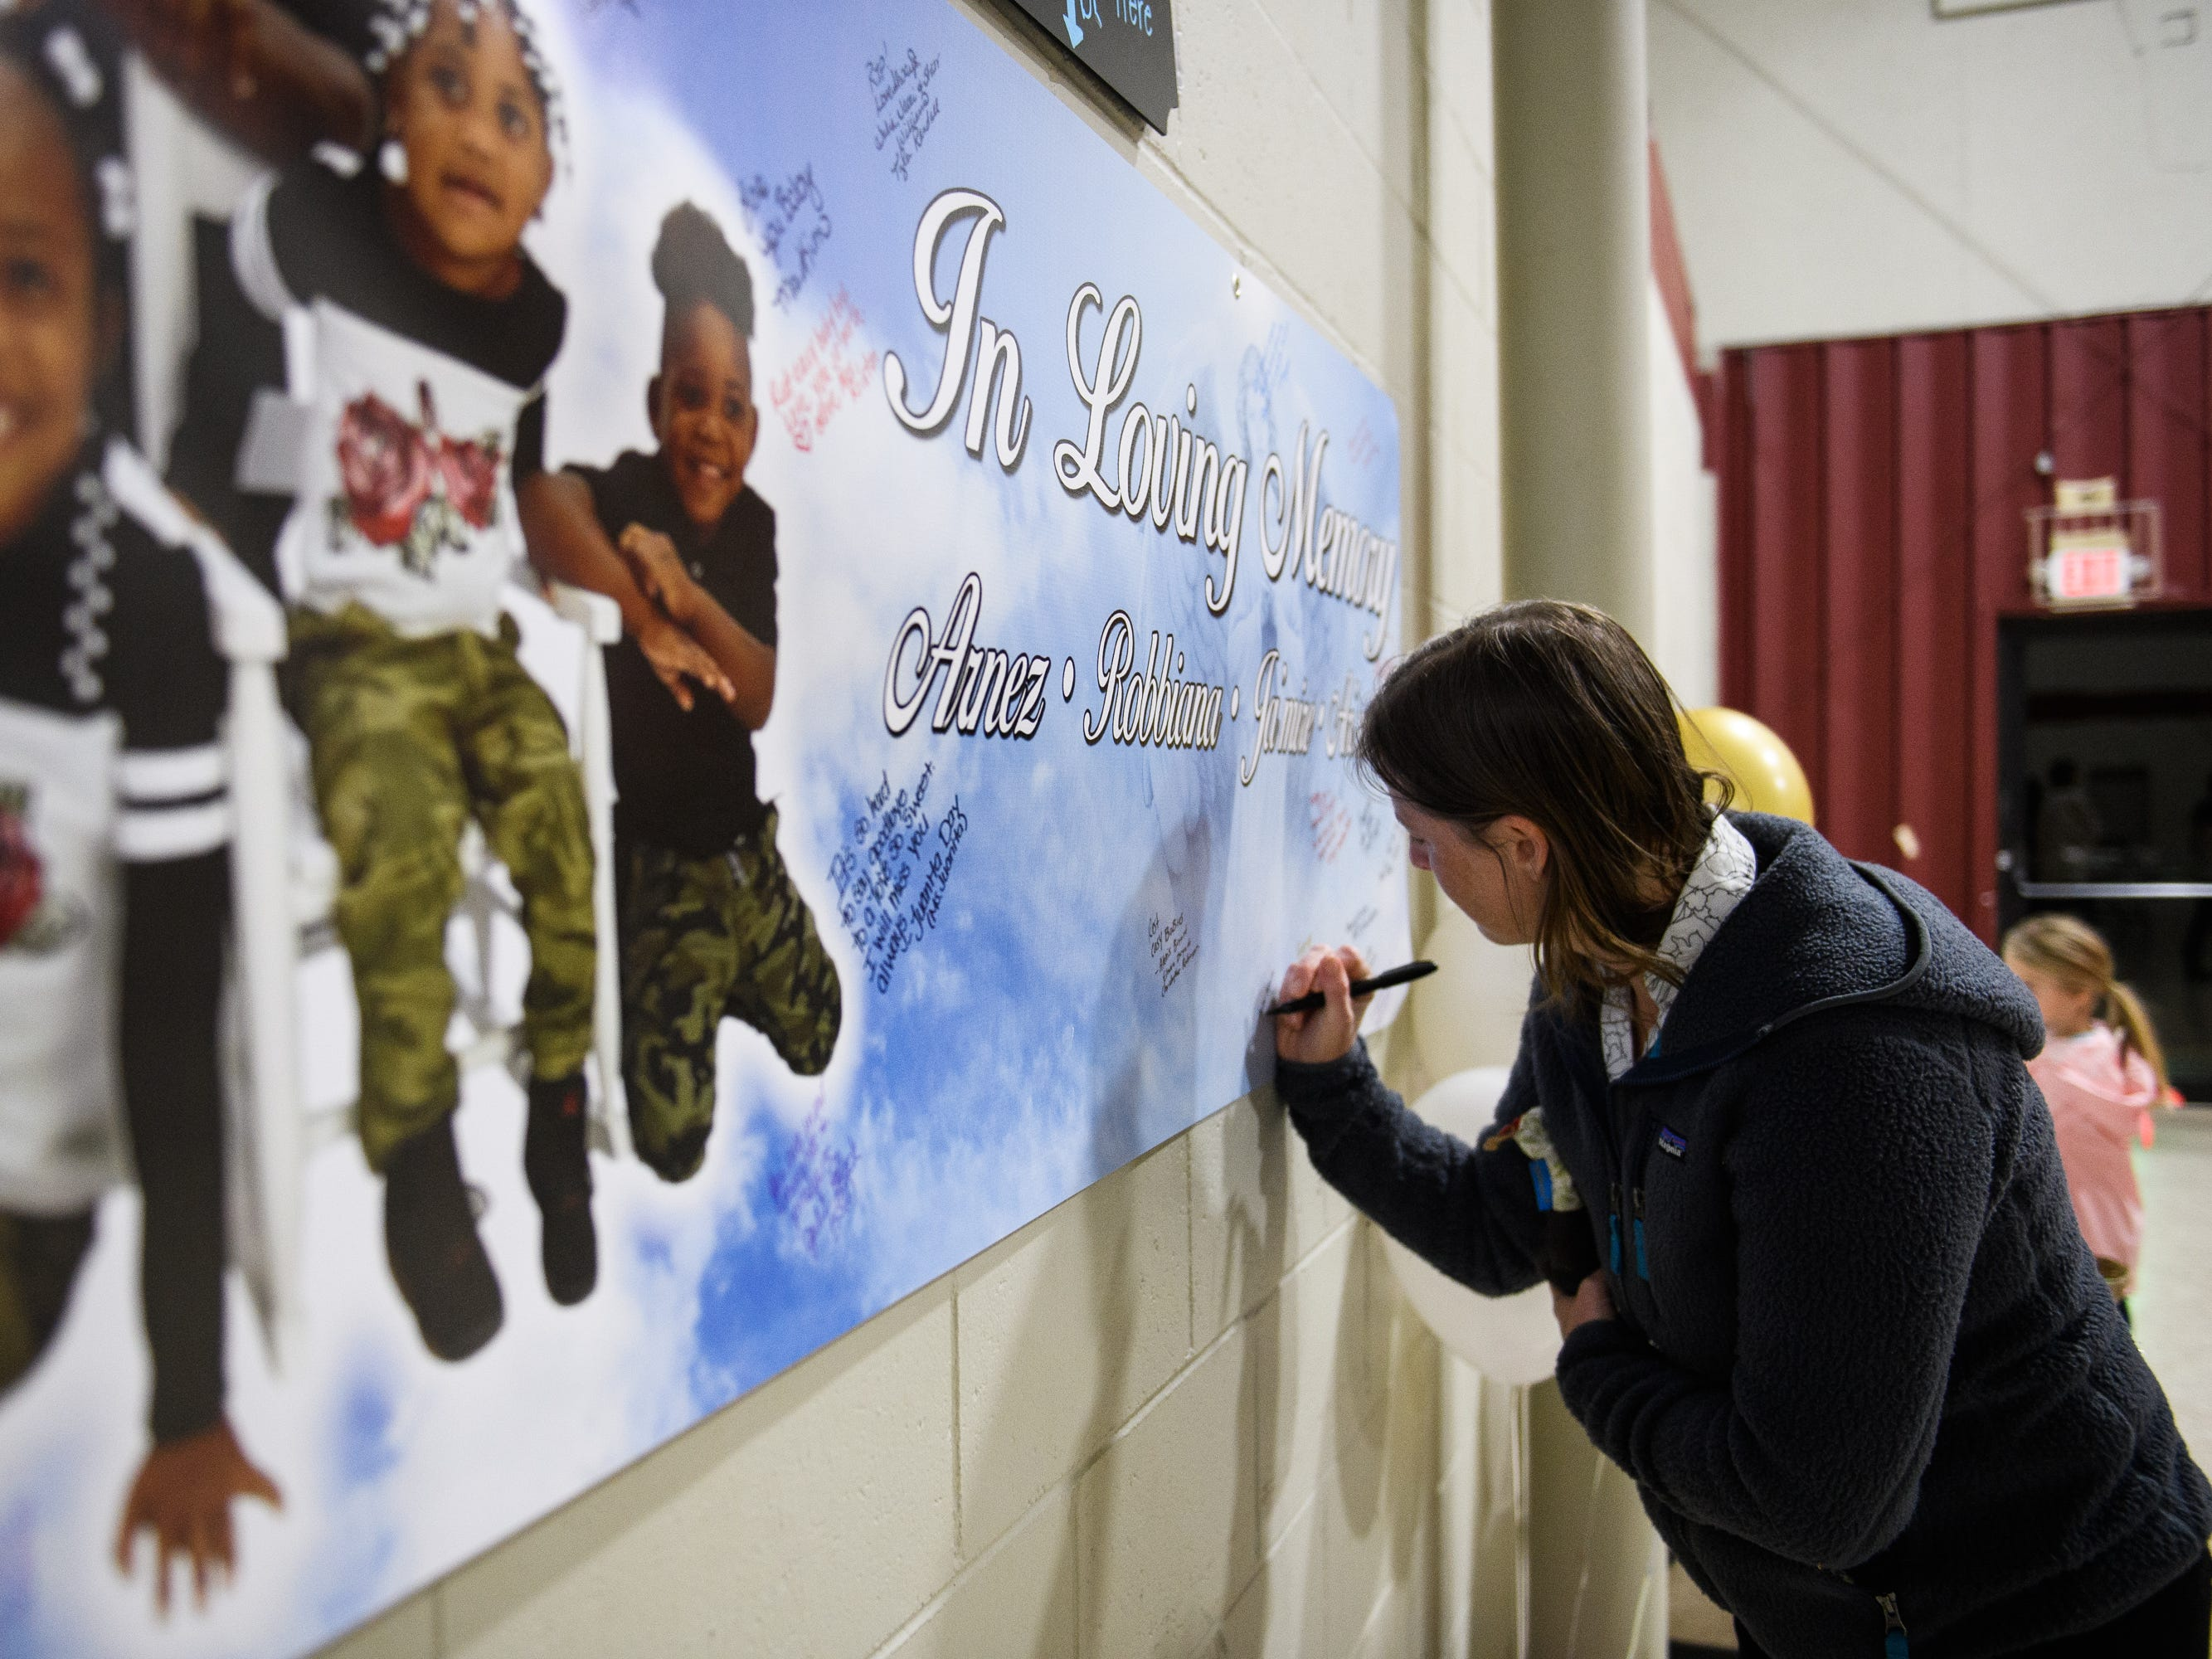 Lauren Schmaltz signs a poster for the four siblings who died due to a single-vehicle DUI wreck during a vigil held in their honor at Clearview Baptist Church on Friday, Dec. 14, 2018.